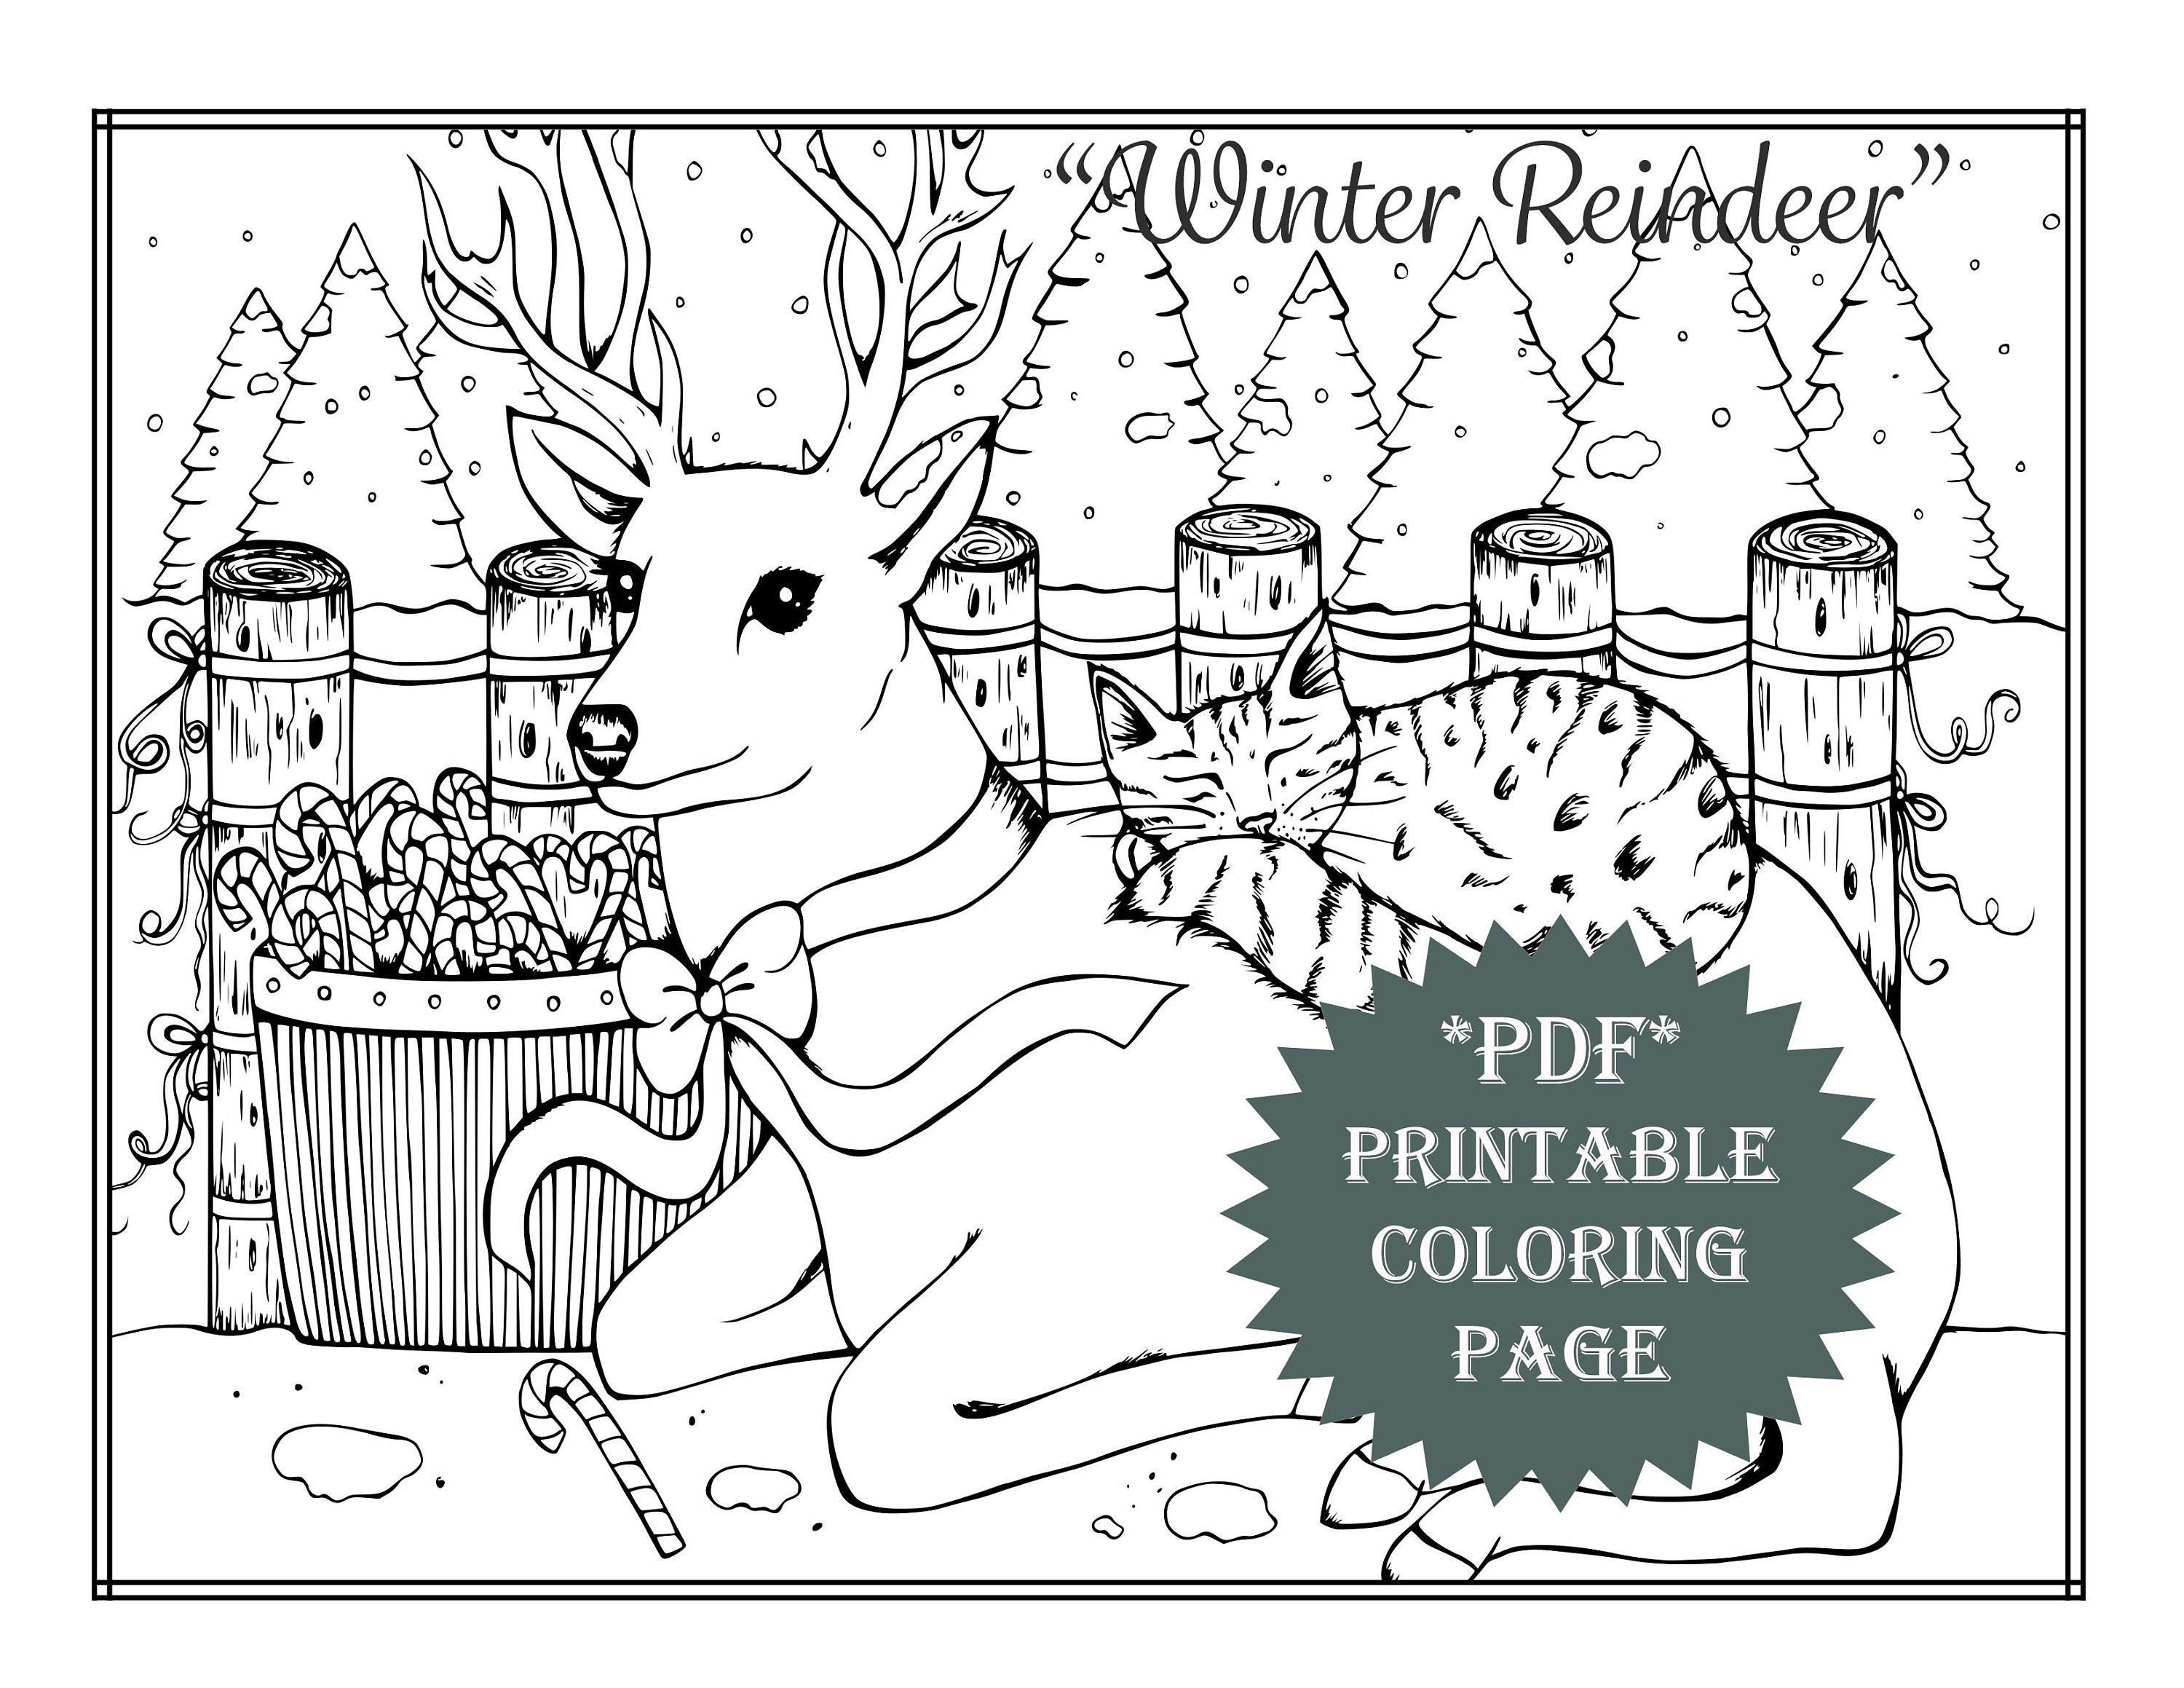 Pdf printable coloring page holiday winter reindeer cat animal adult coloring book prints christmas